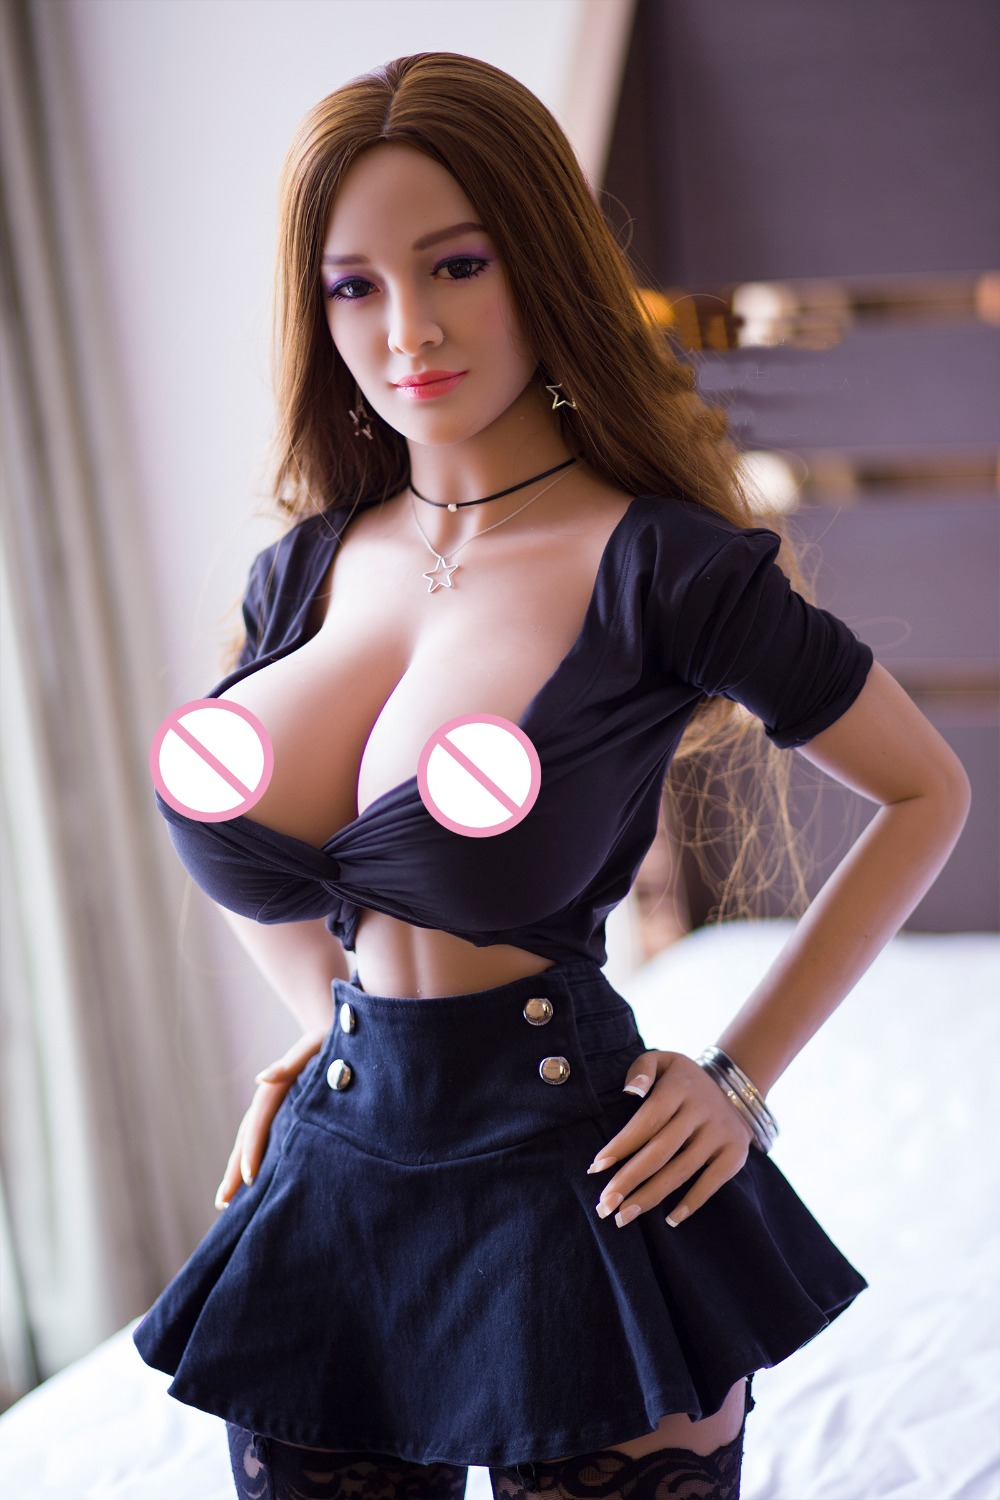 17 New 153cm Top Quality Tan Skin Japanese Real Doll, Full Size Silicone Sex Doll Love Doll, Oral Vagina Pussy Anal Adult Doll 2